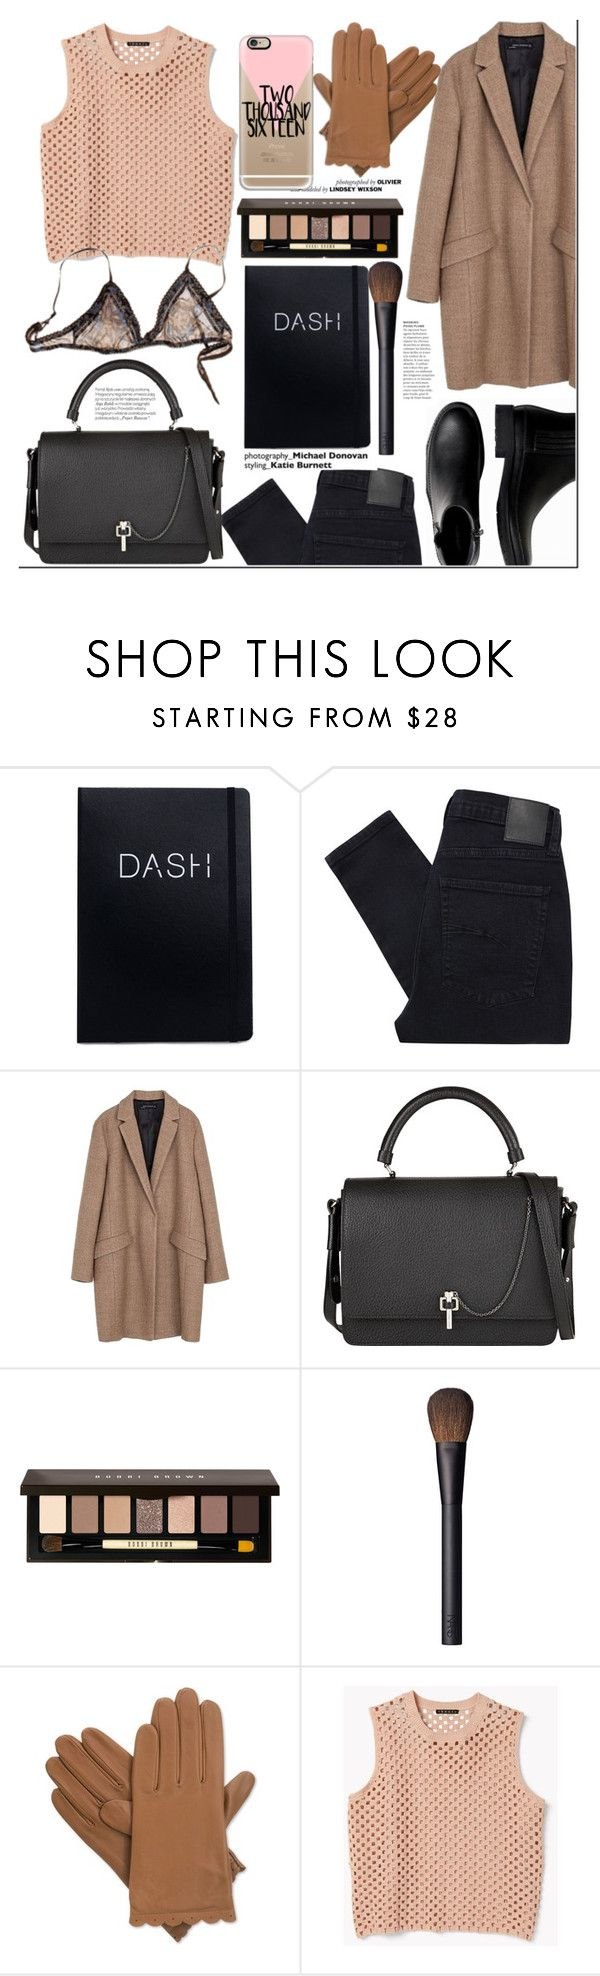 """Nude"" by nastya-d on Polyvore featuring F, Nobody Denim, Zara, Carven, Bobbi Brown Cosmetics, NARS Cosmetics, 3.1 Phillip Lim, Isotoner, Theory and Banana Republic"